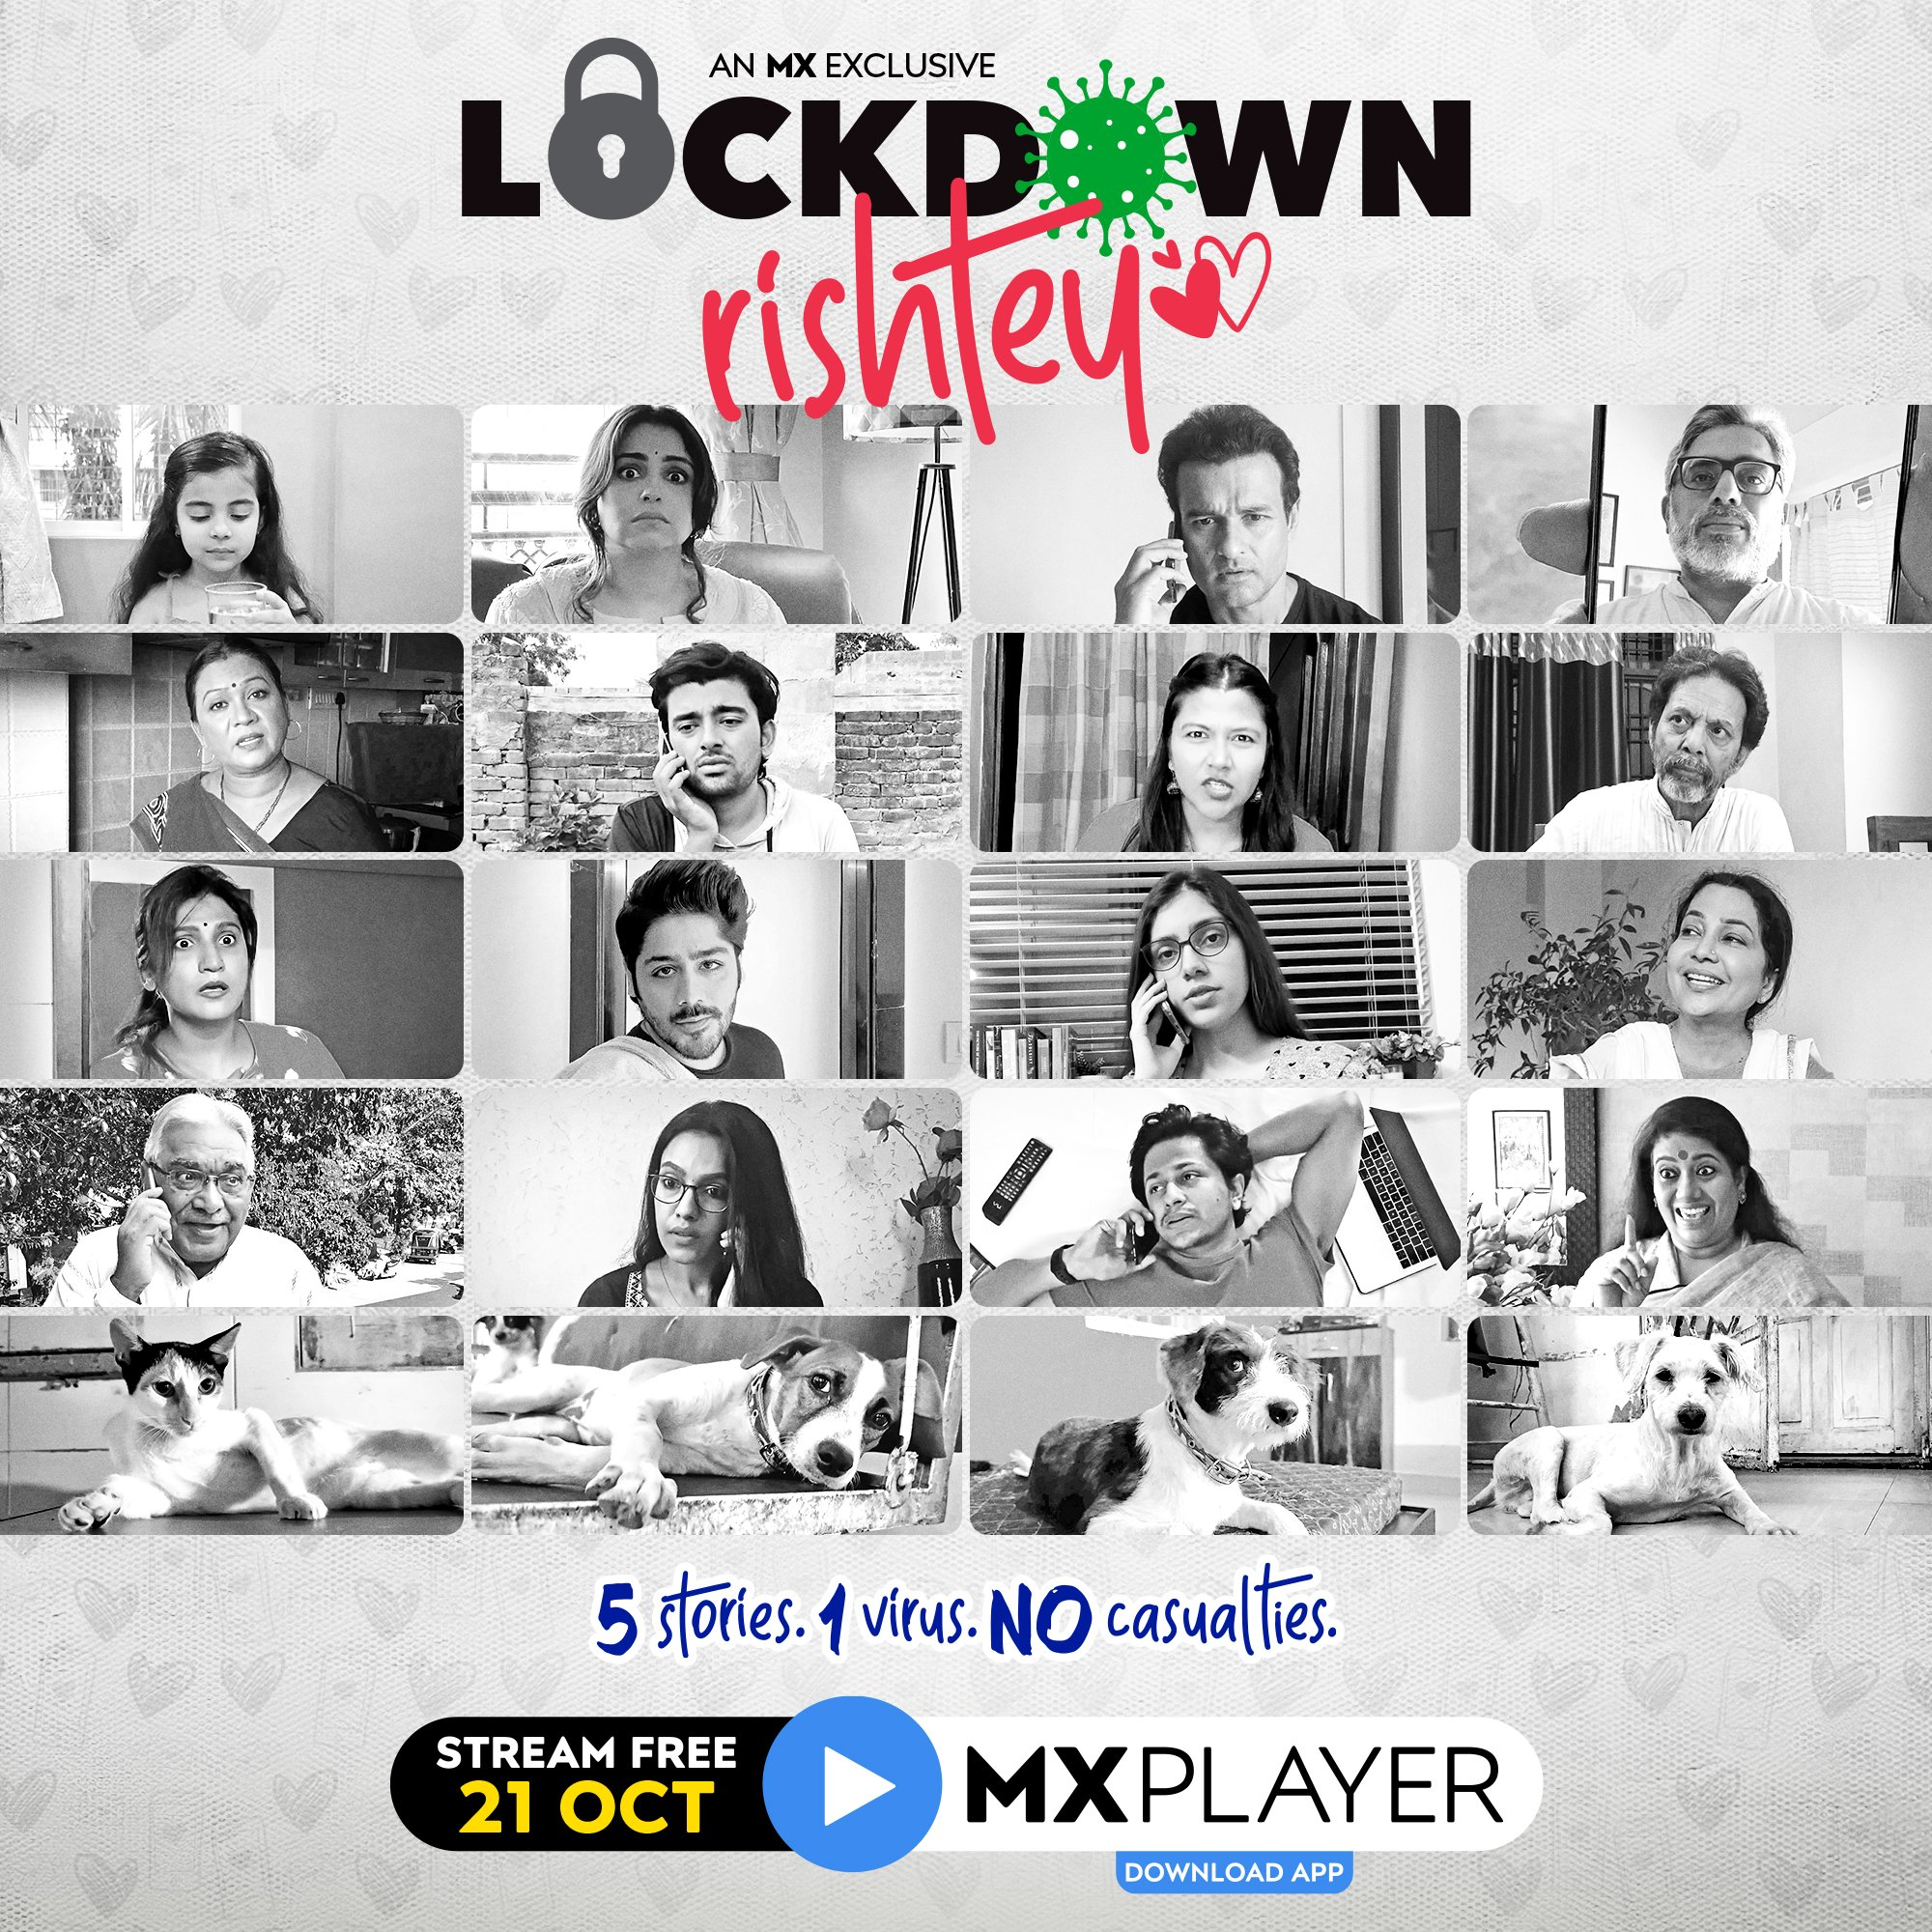 Watch how this lockdown reshaped relationships with MX Player's Lockdown Rishtey - Digpu News